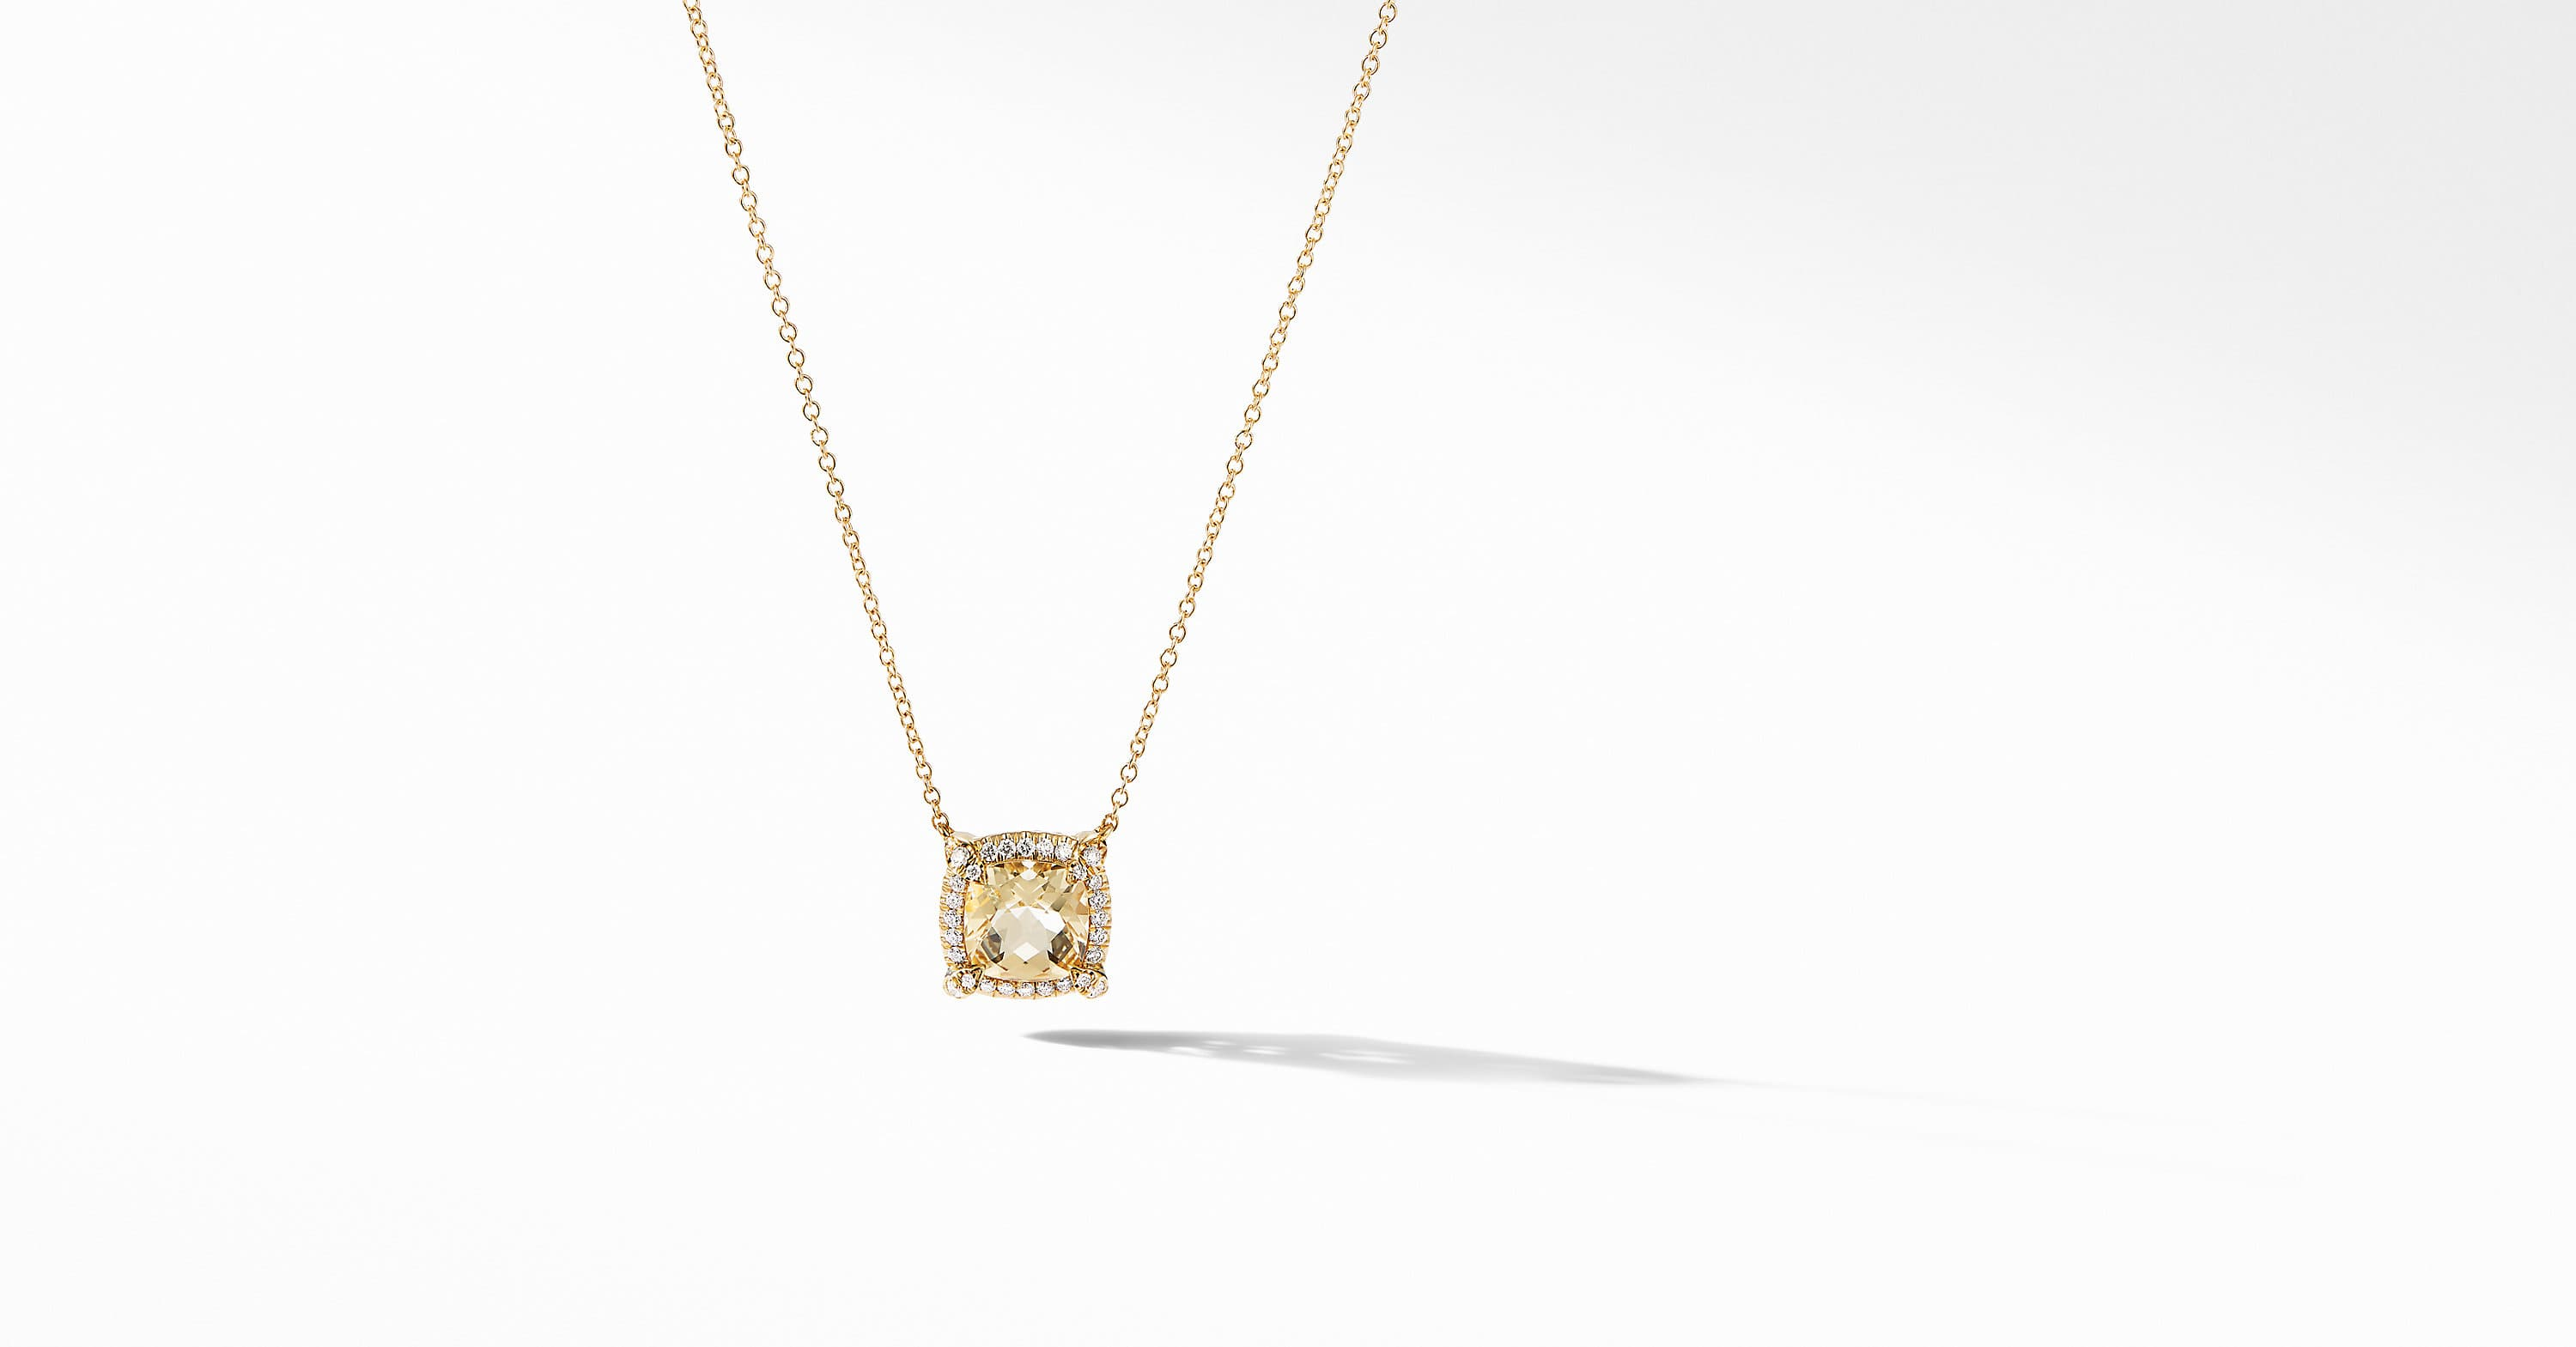 Petite Chatelaine Pavé Bezel Pendant Necklace in 18K Yellow Gold, 7mm